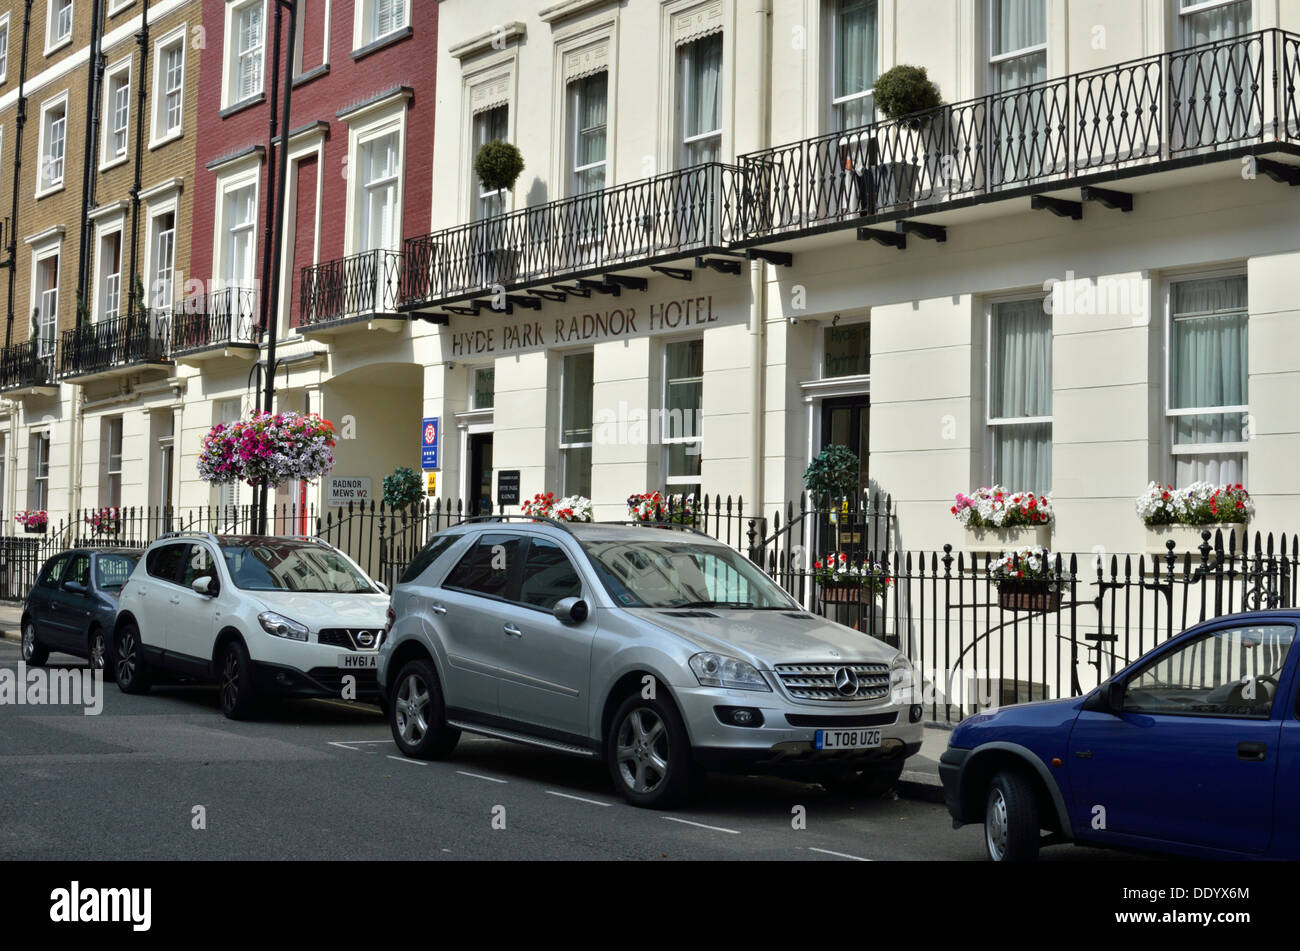 Hyde Park Radnor Hotel in Sussex Place, Bayswater, London, UK. - Stock Image